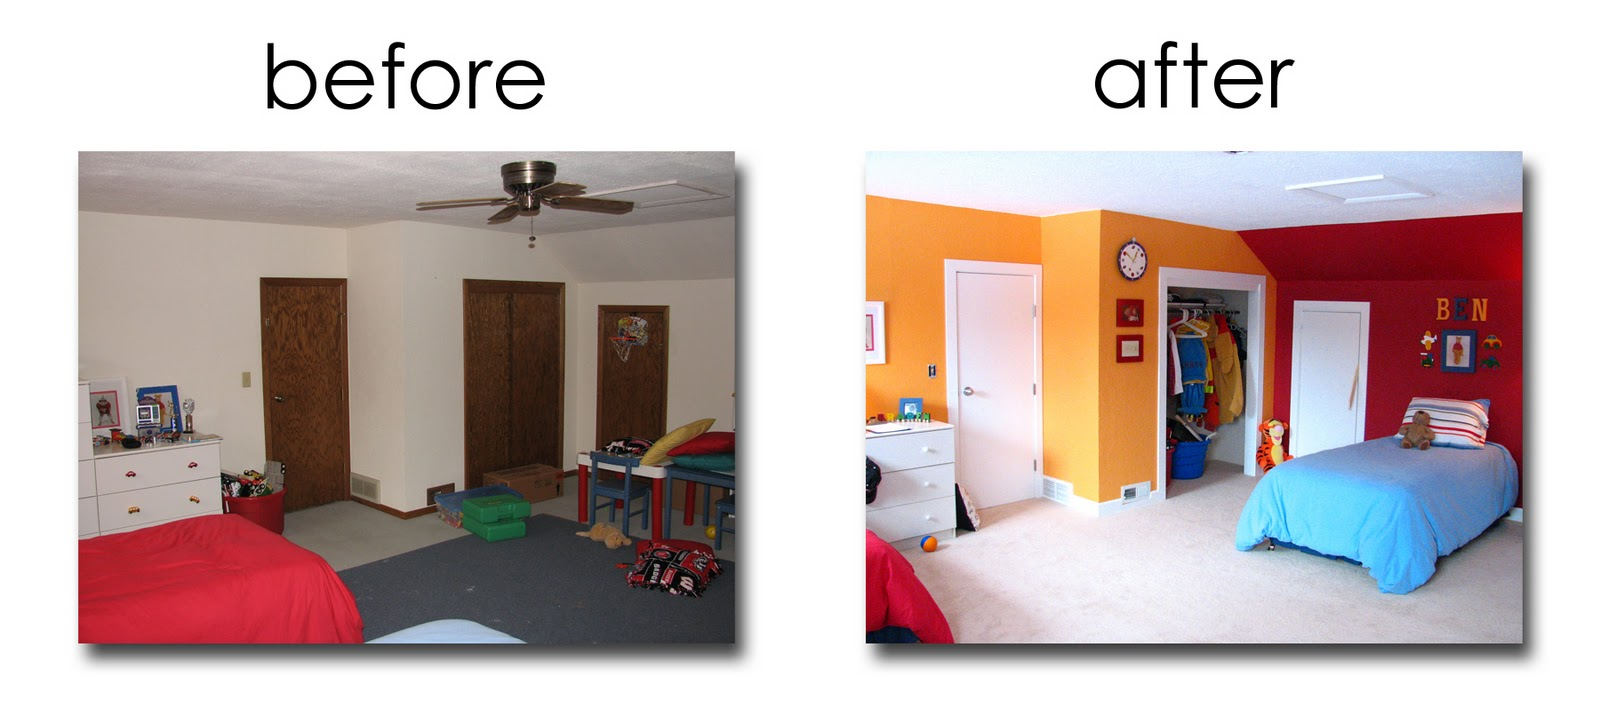 Messy Kids Room Before And After clean bedroom before and after